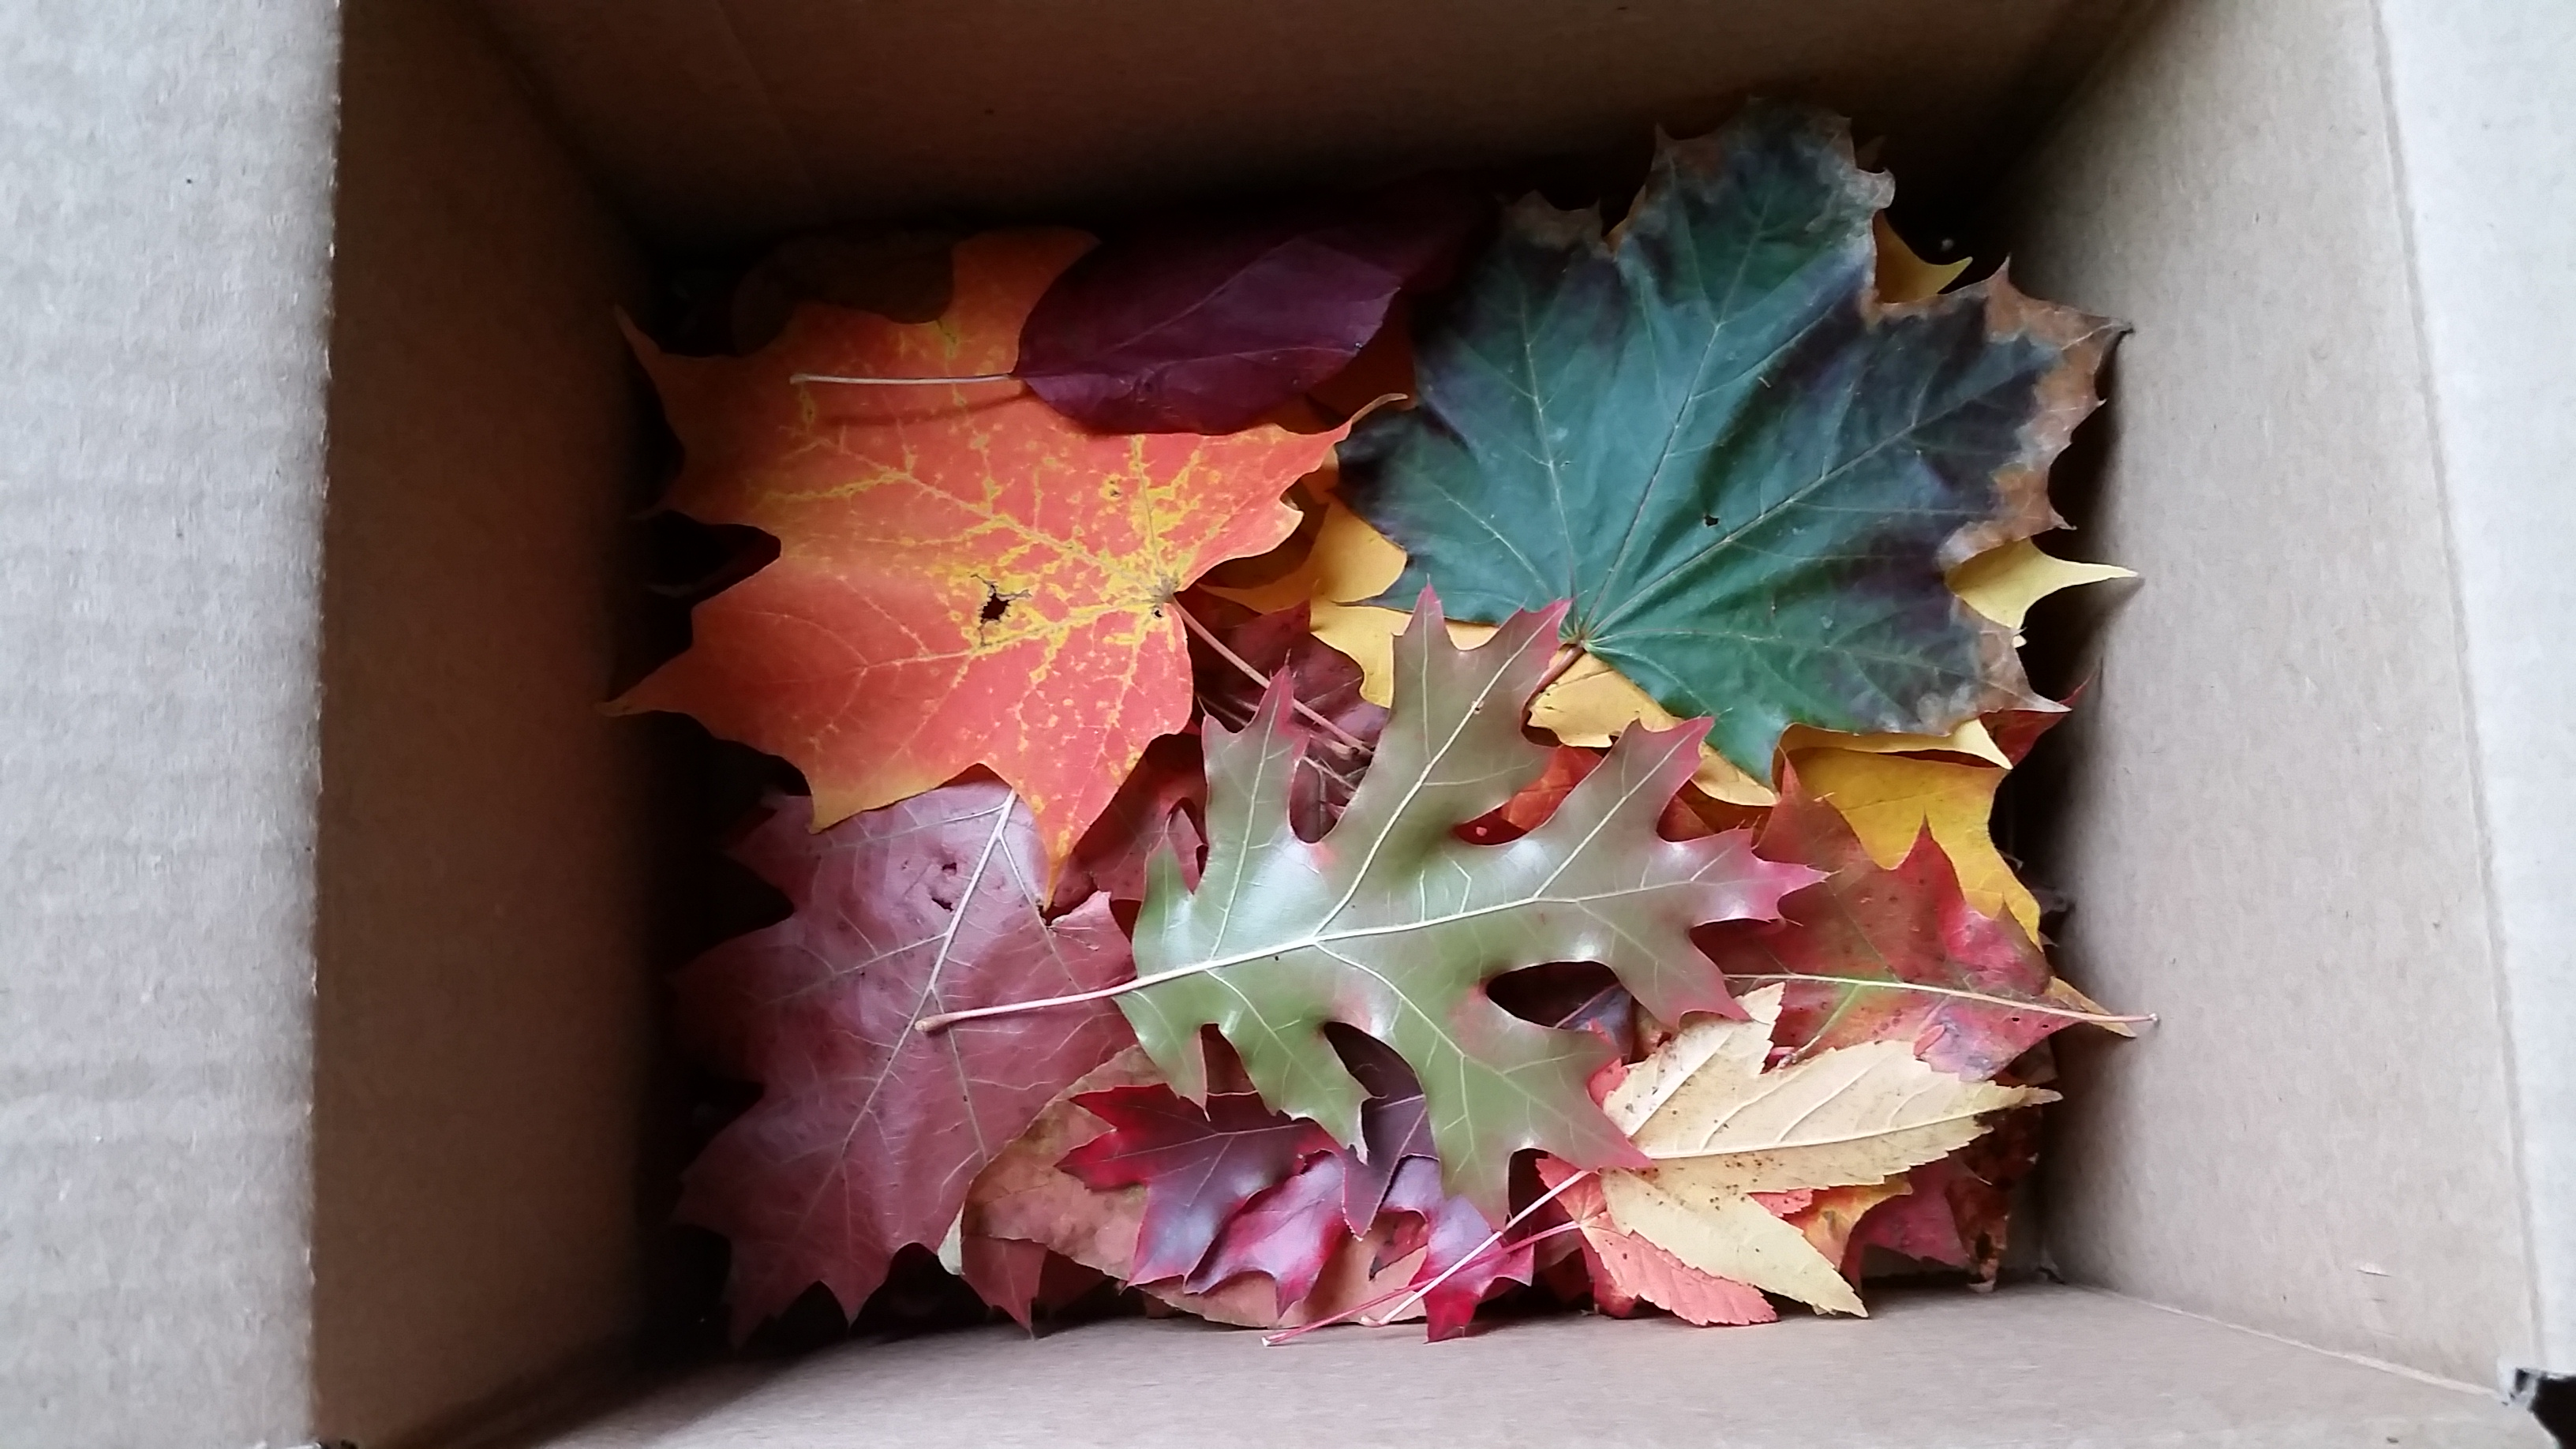 the box of leaves